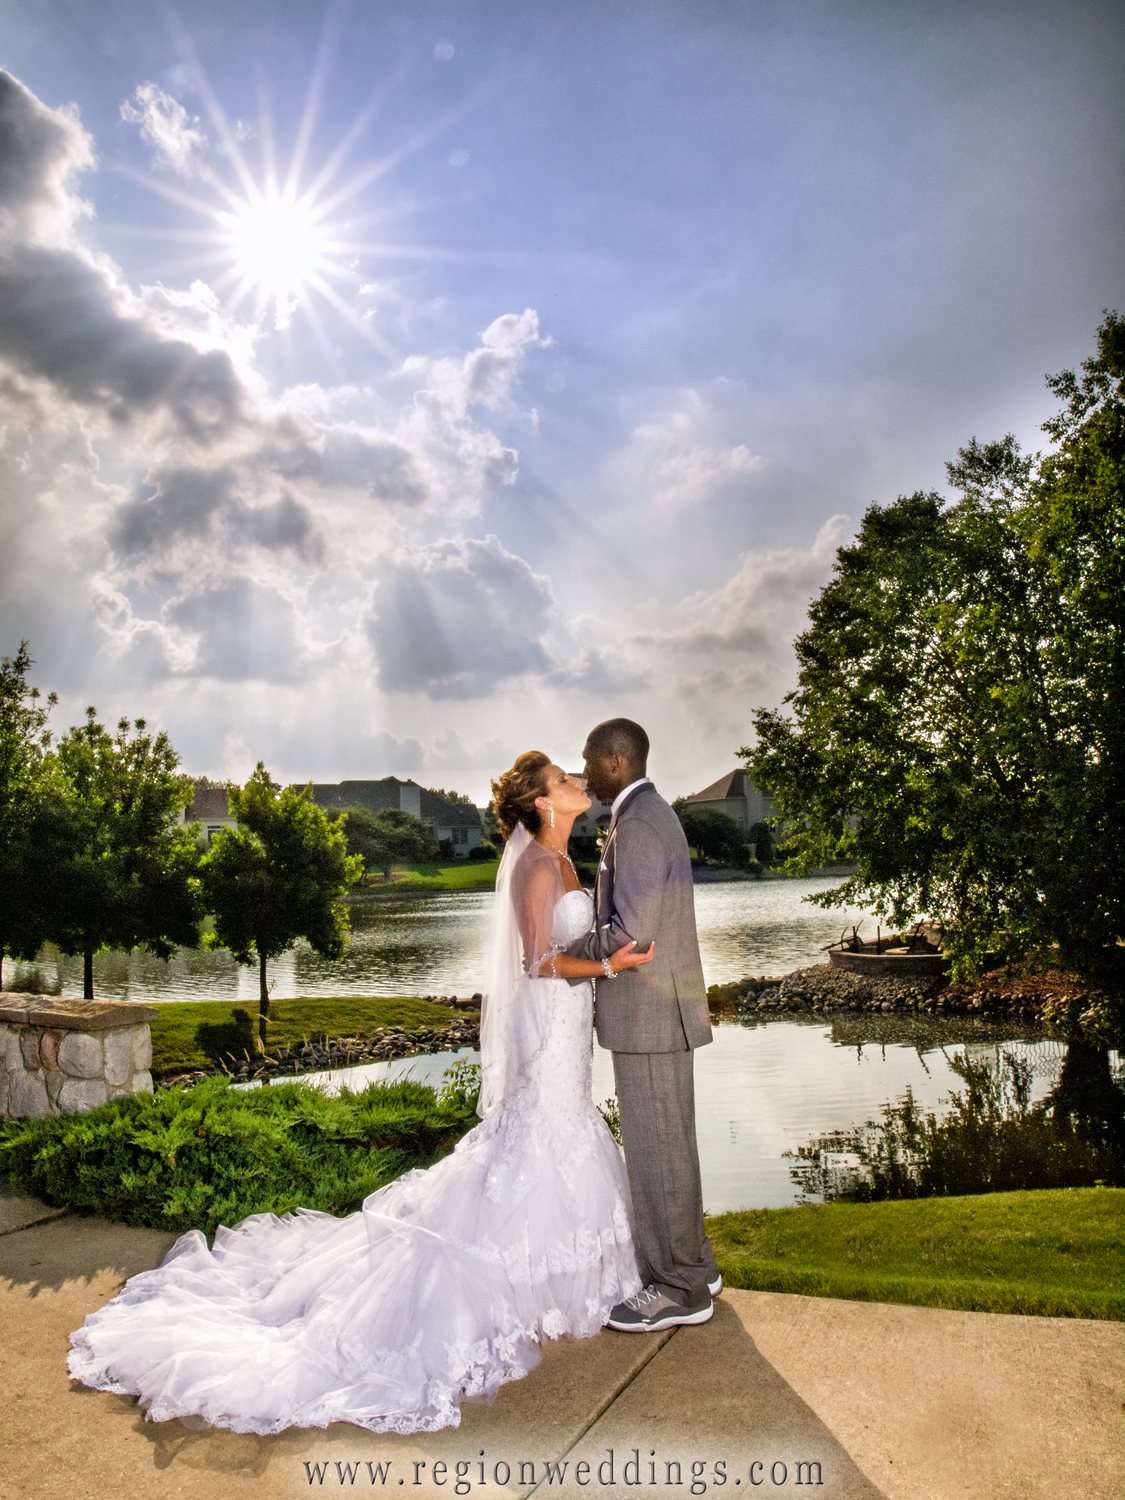 A sunburst appears in the sky as the bride and groom look toward each other in this romantic wedding photo at Ellendale Farm in Crown point.